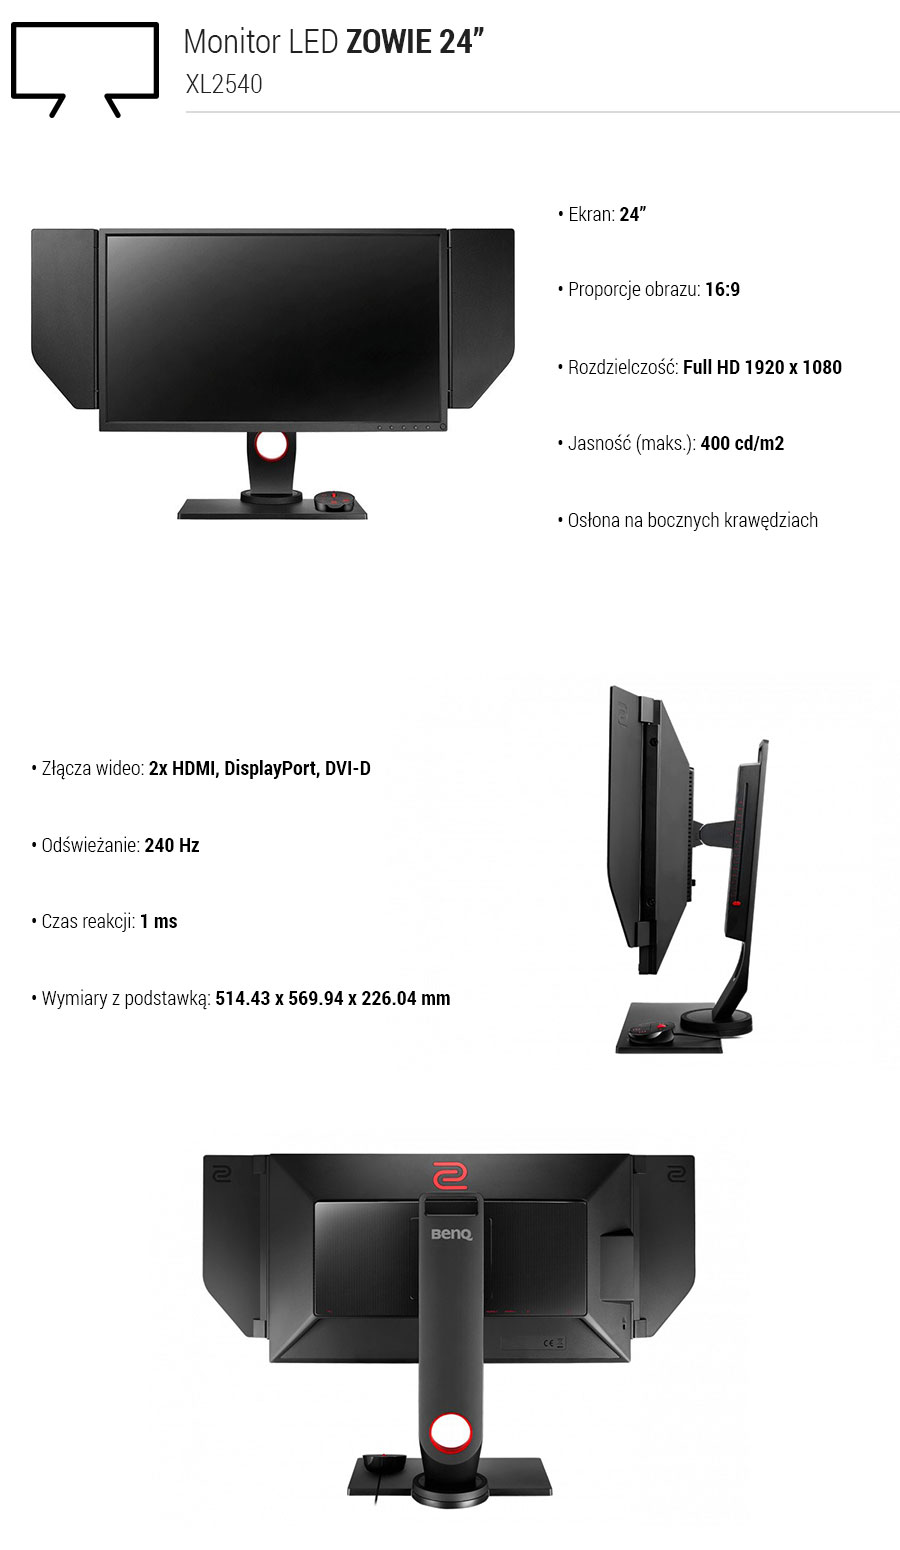 BenQ ZOWIE 24 XL2540 LED